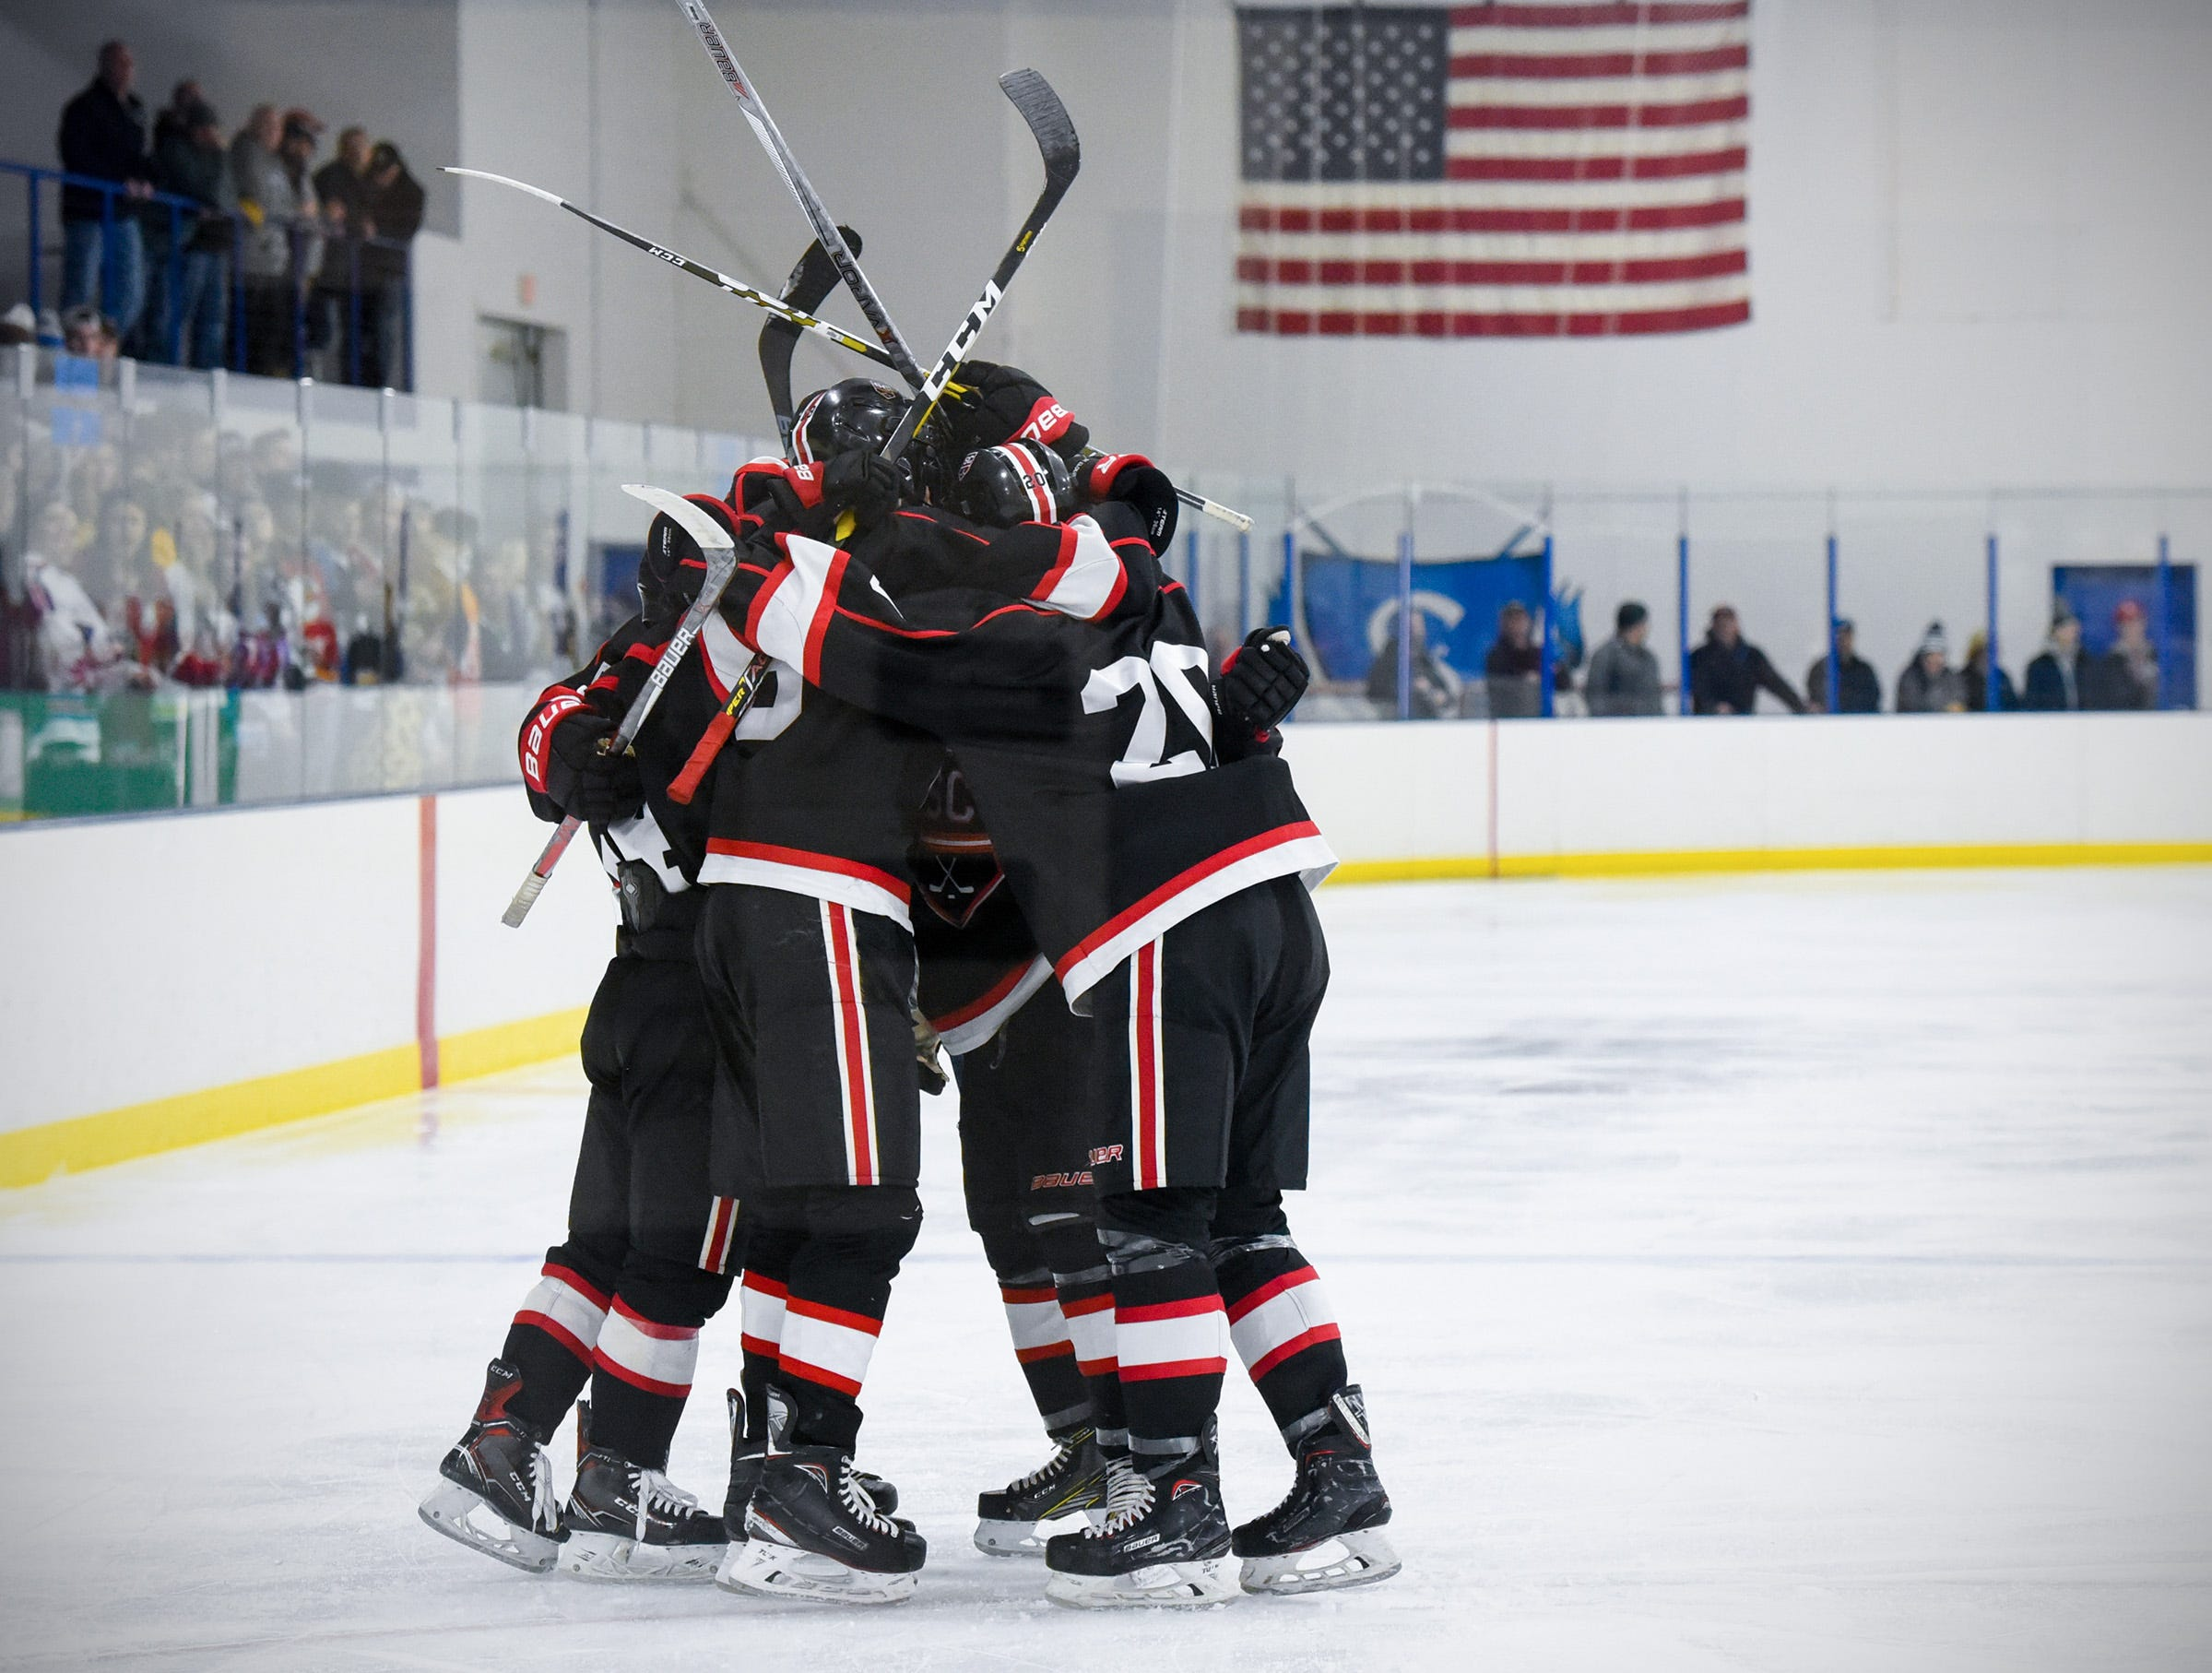 St. Cloud celebrates a goal against Sartell during the second period Tuesday, Dec. 18, at the Bernick's Arena in Sartell.